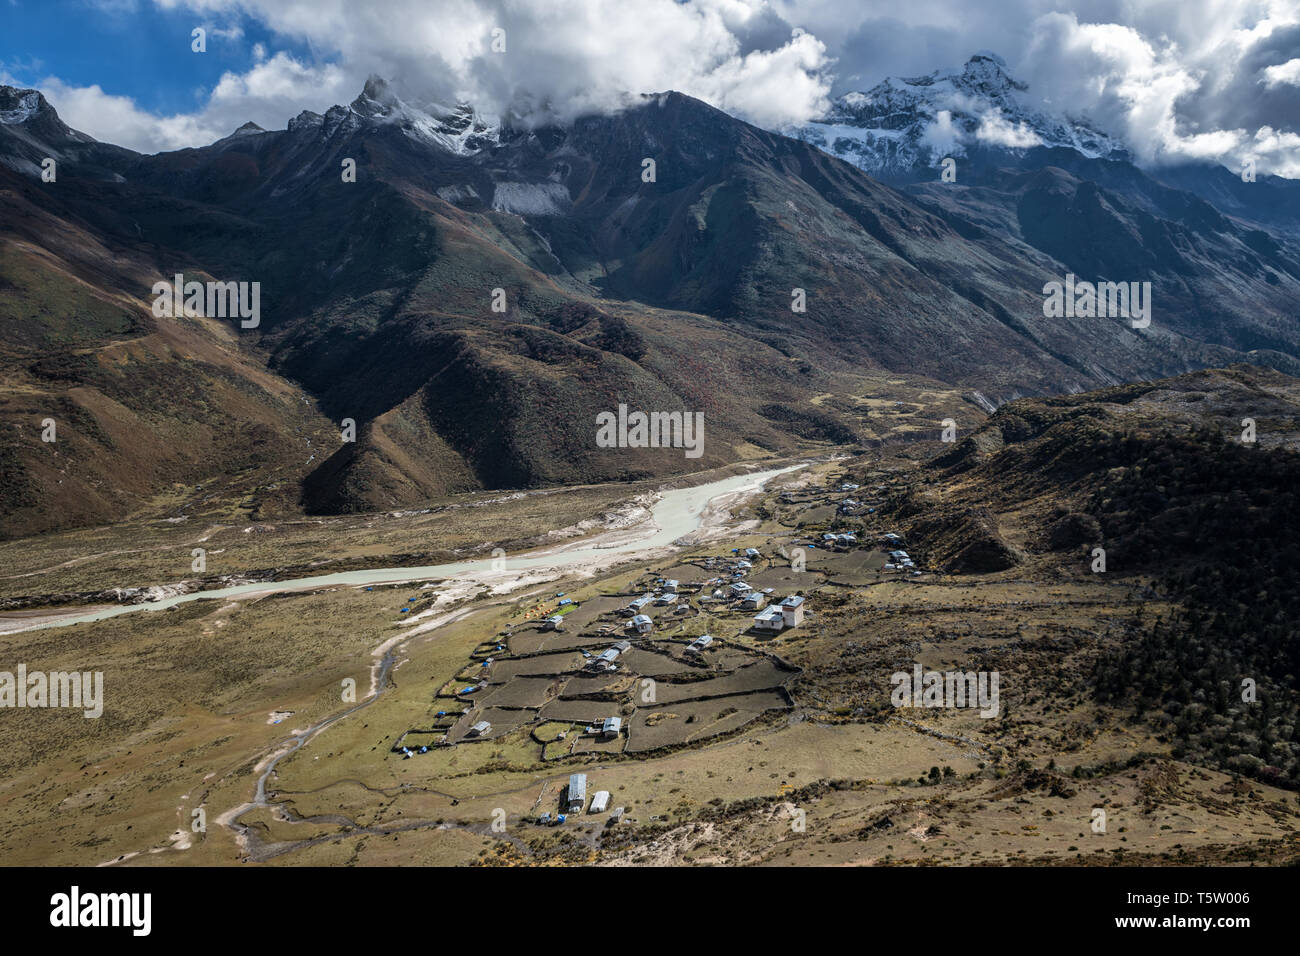 The remote village of Chozo and its mountains, Lunana Gewog, Gasa District, Snowman Trek, Bhutan Stock Photo